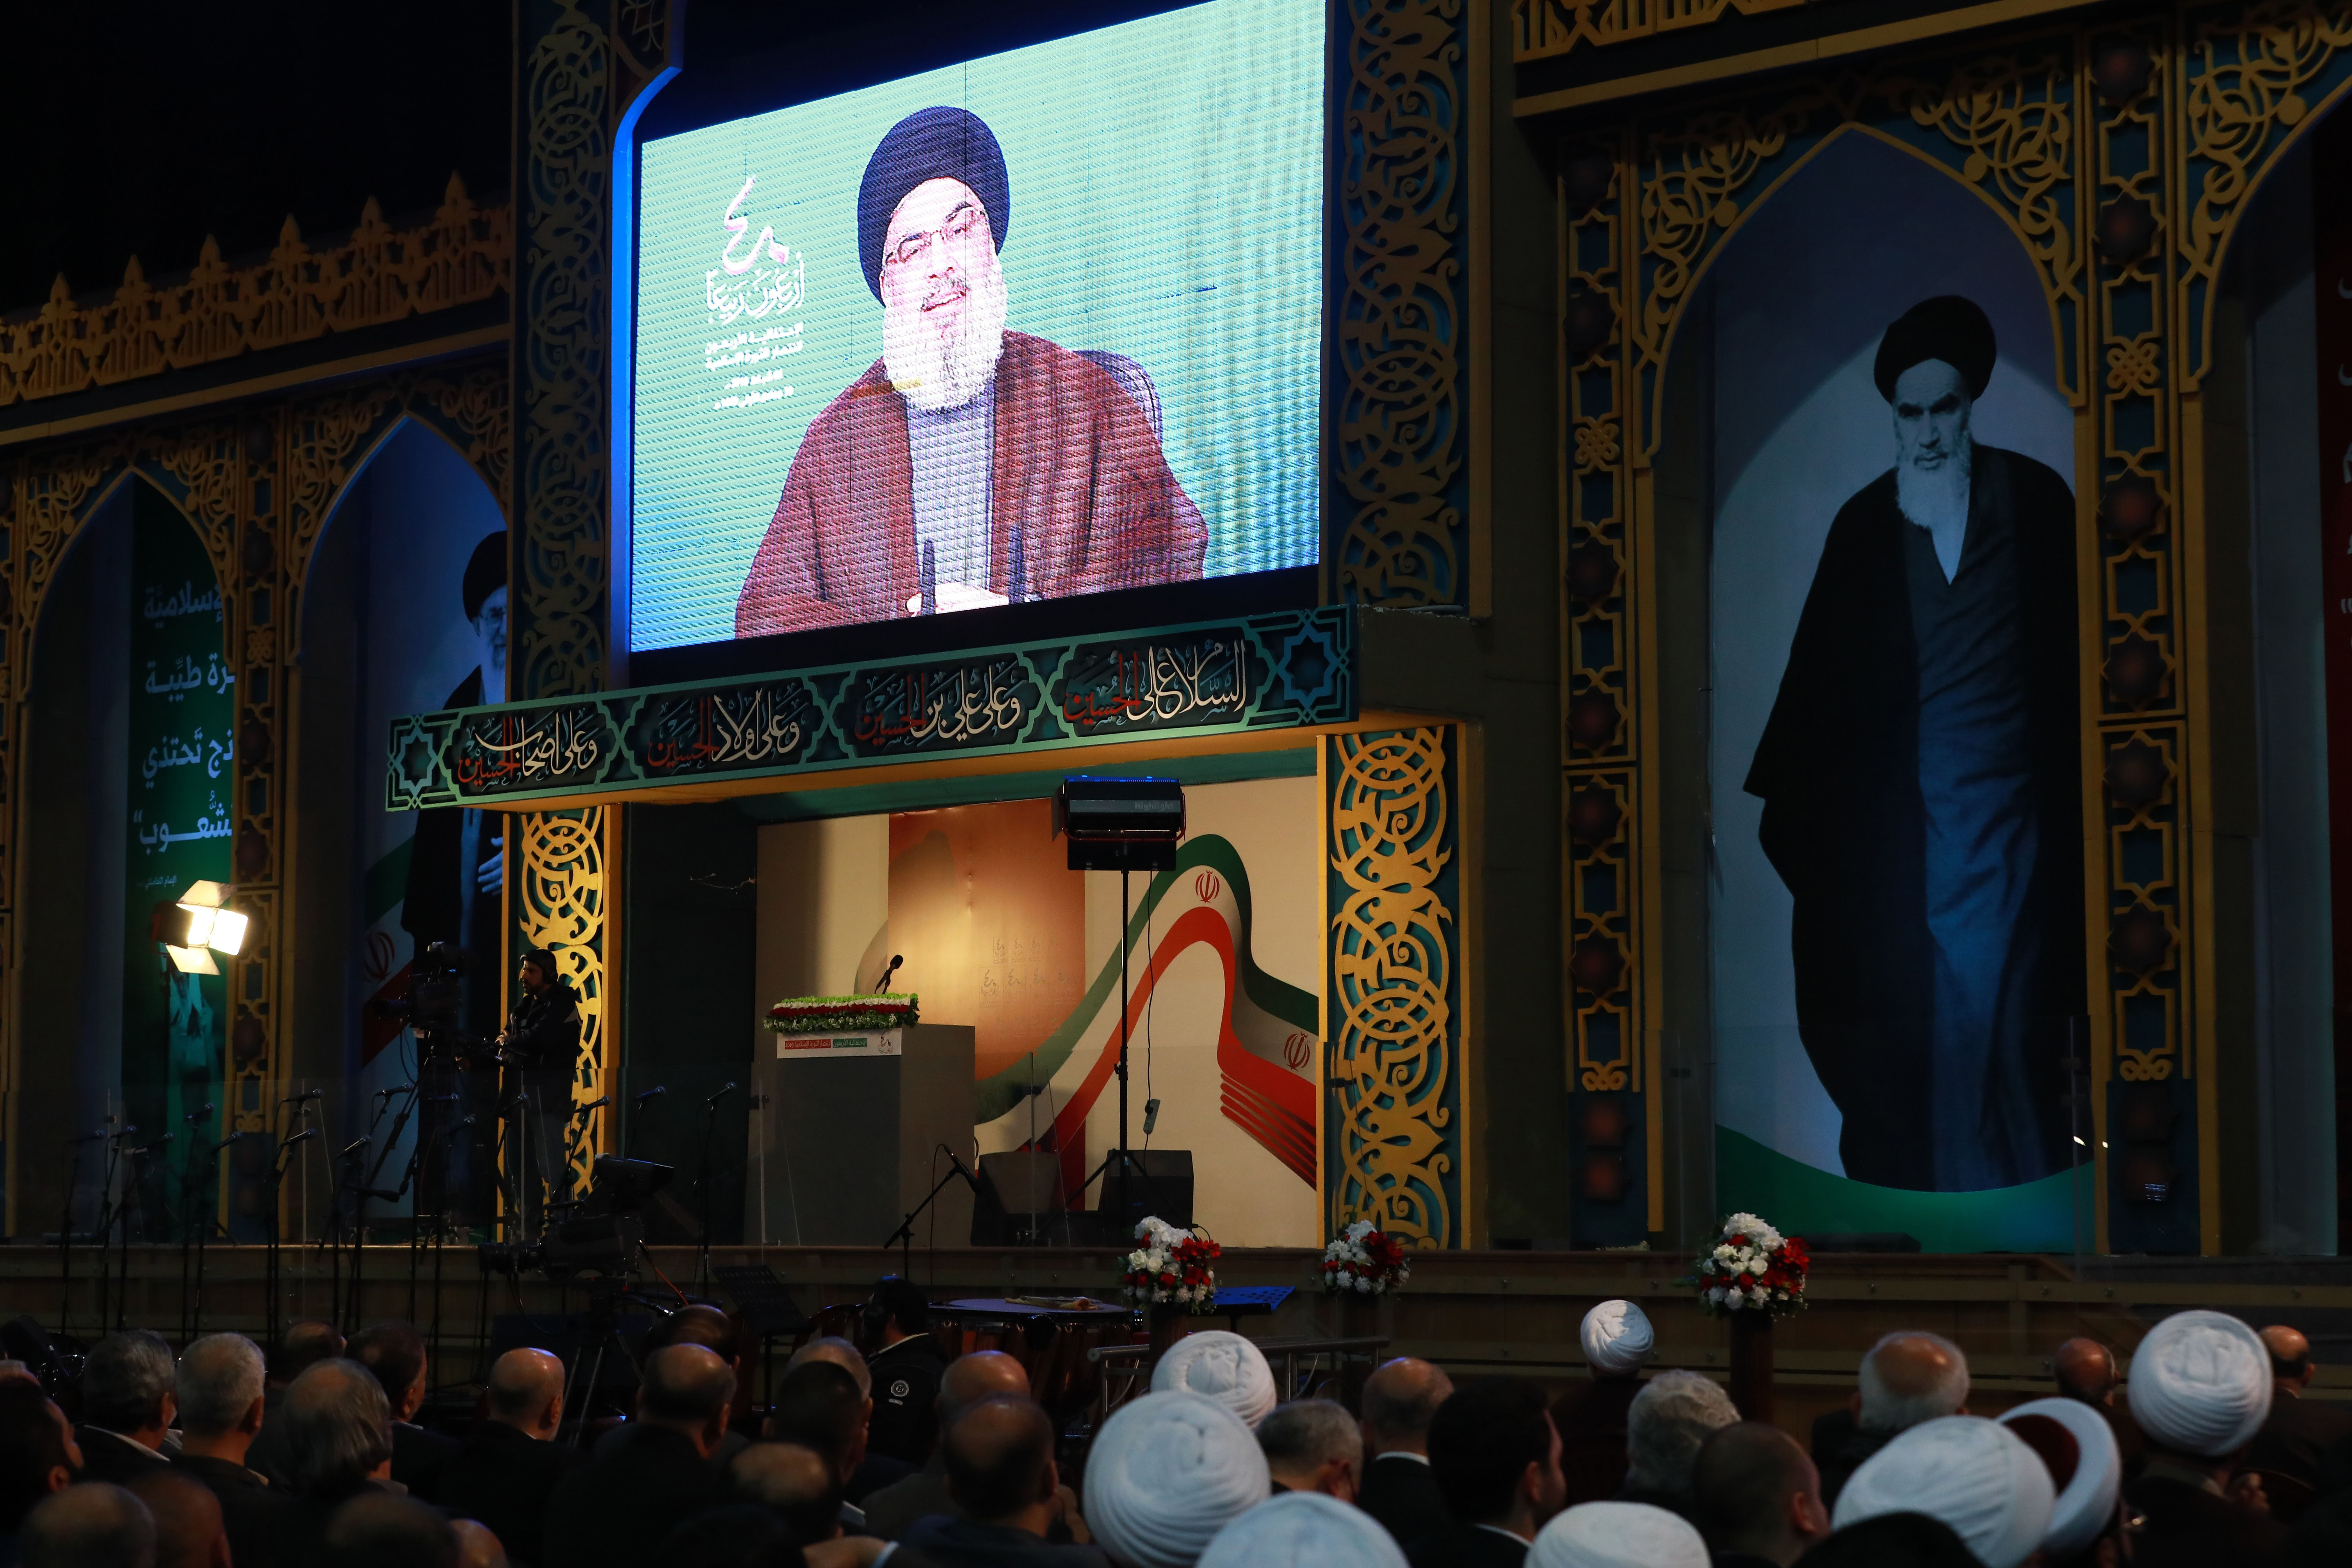 Supporters of Lebanon's Shiite movement Hezbollah listen to a speech by the movement's leader Hassan Nasrallah on a large screen, during celebrations marking the 40th anniversary of the Iranian revolution in the capital Beirut's southern suburbs on February 6, 2019. (Photo by ANWAR AMRO/AFP/Getty Images)